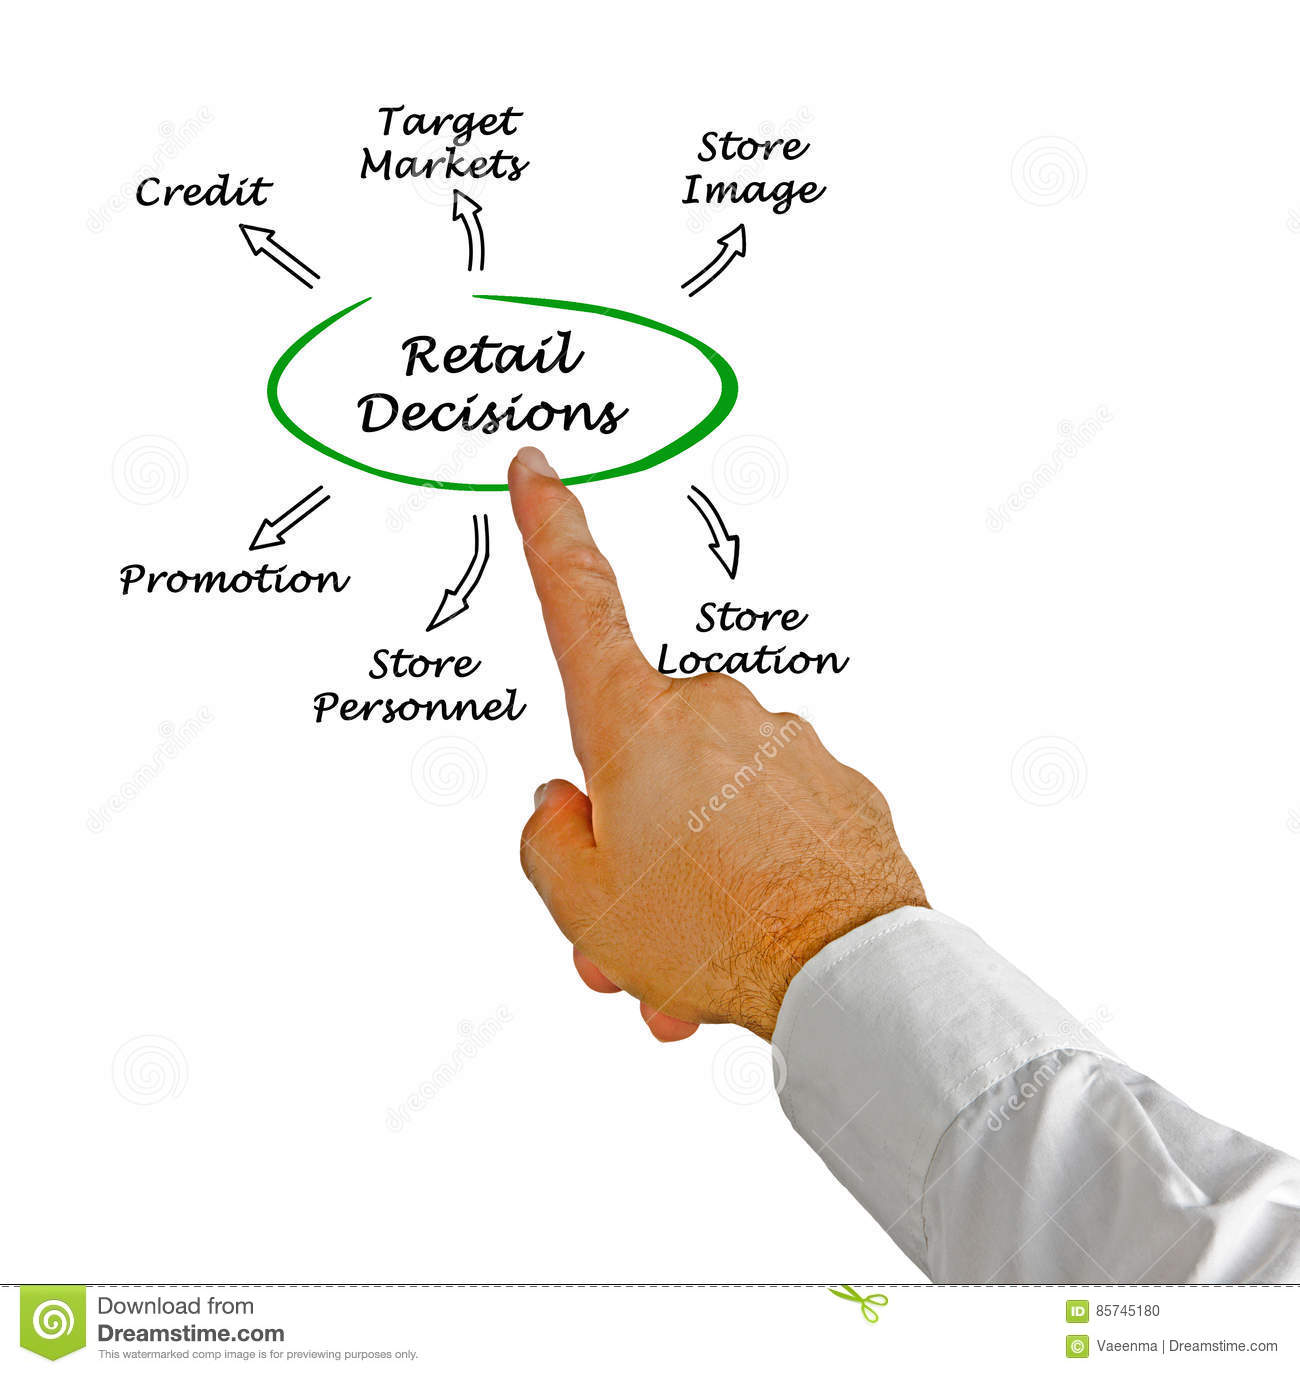 Typical Hiring Processes for Retail Jobs